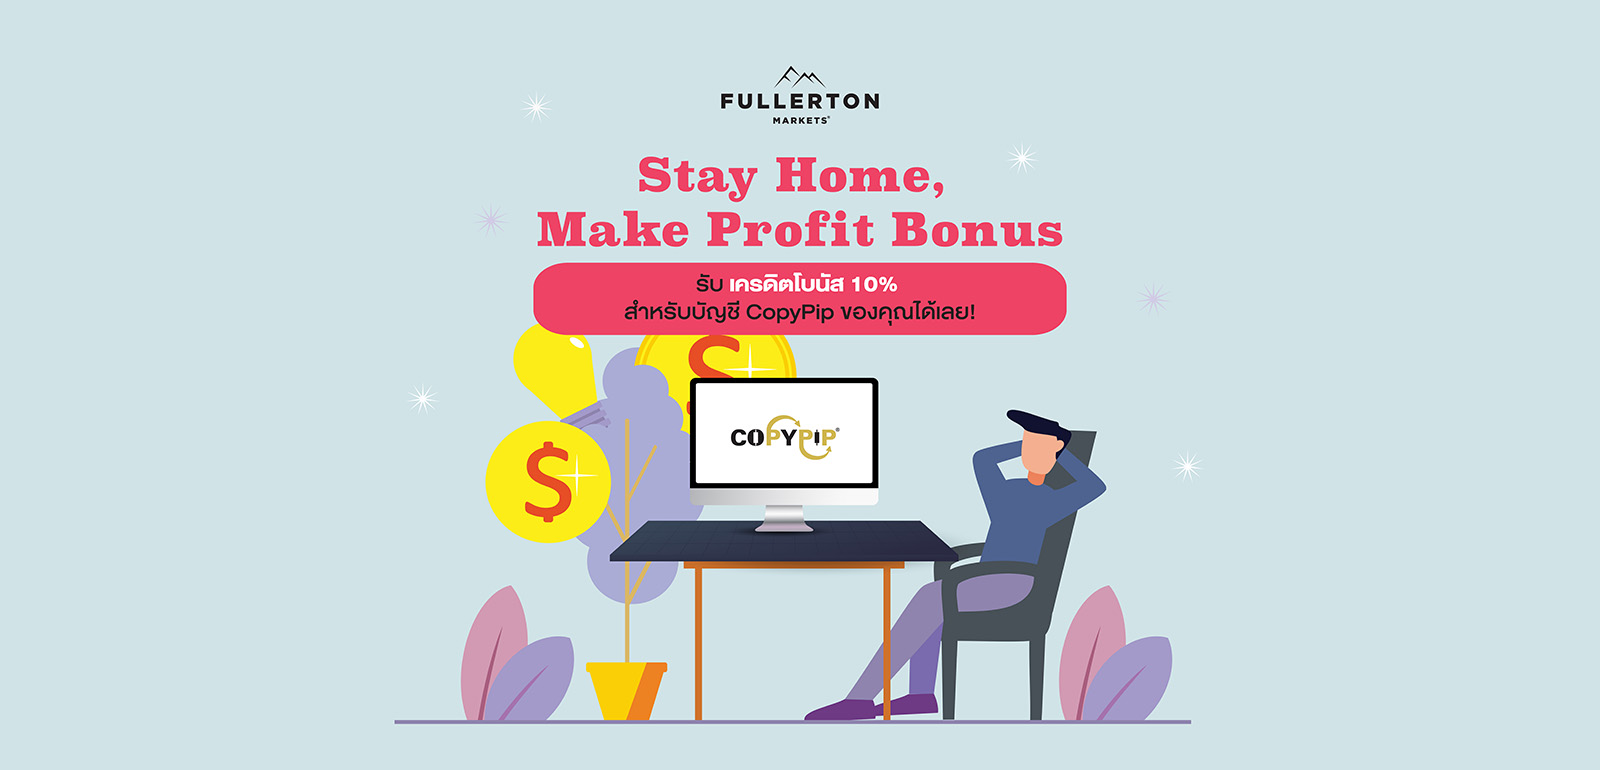 Stay Home Make Profit Bonus